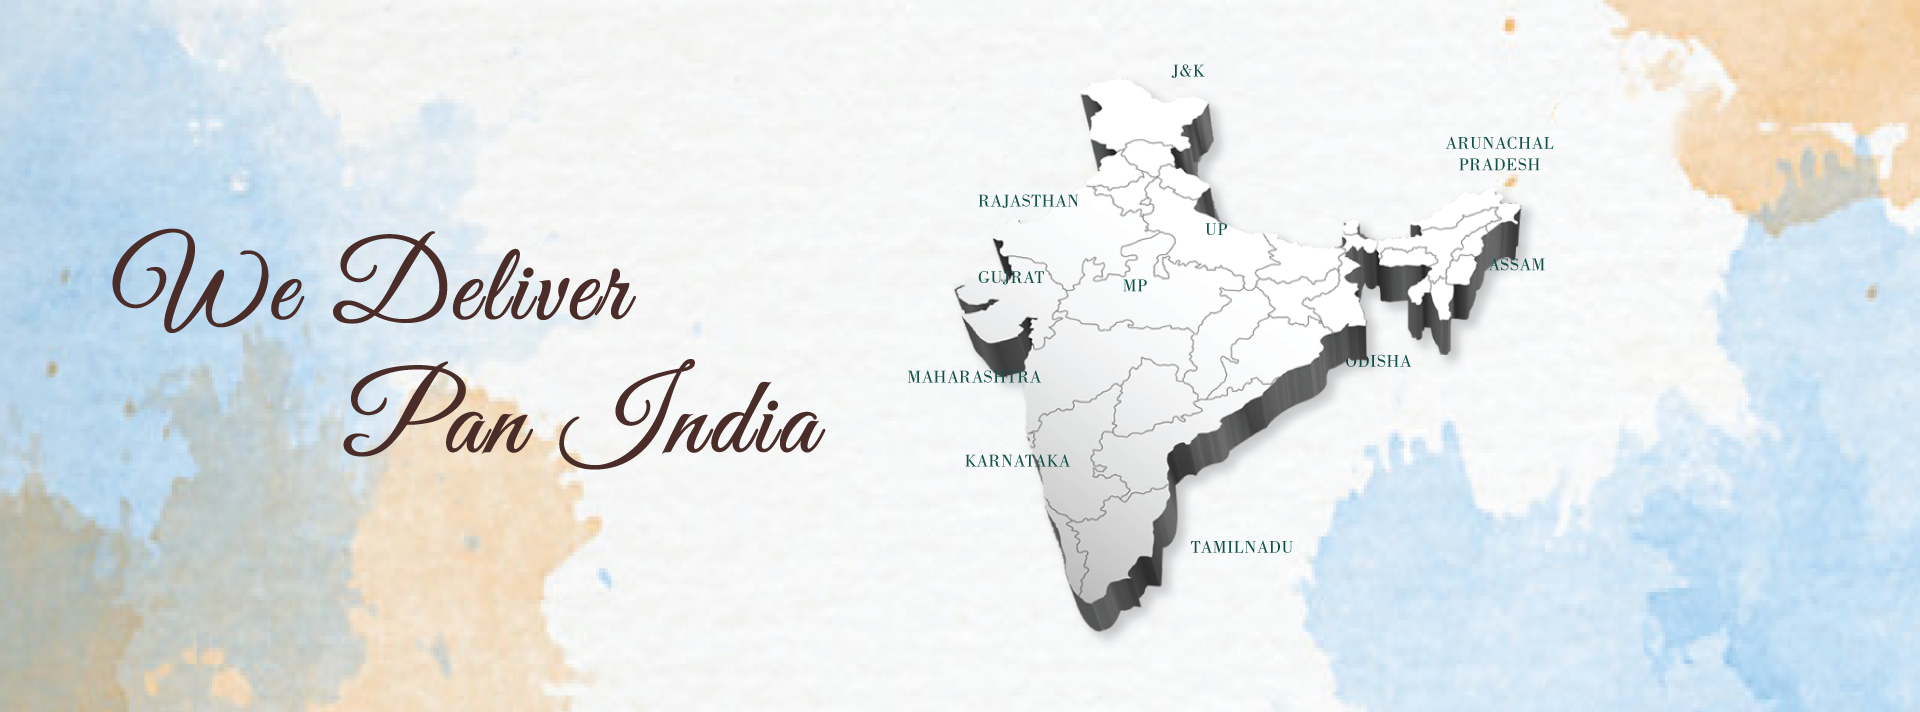 Banners/We_Deliver_pan_india-01.jpg